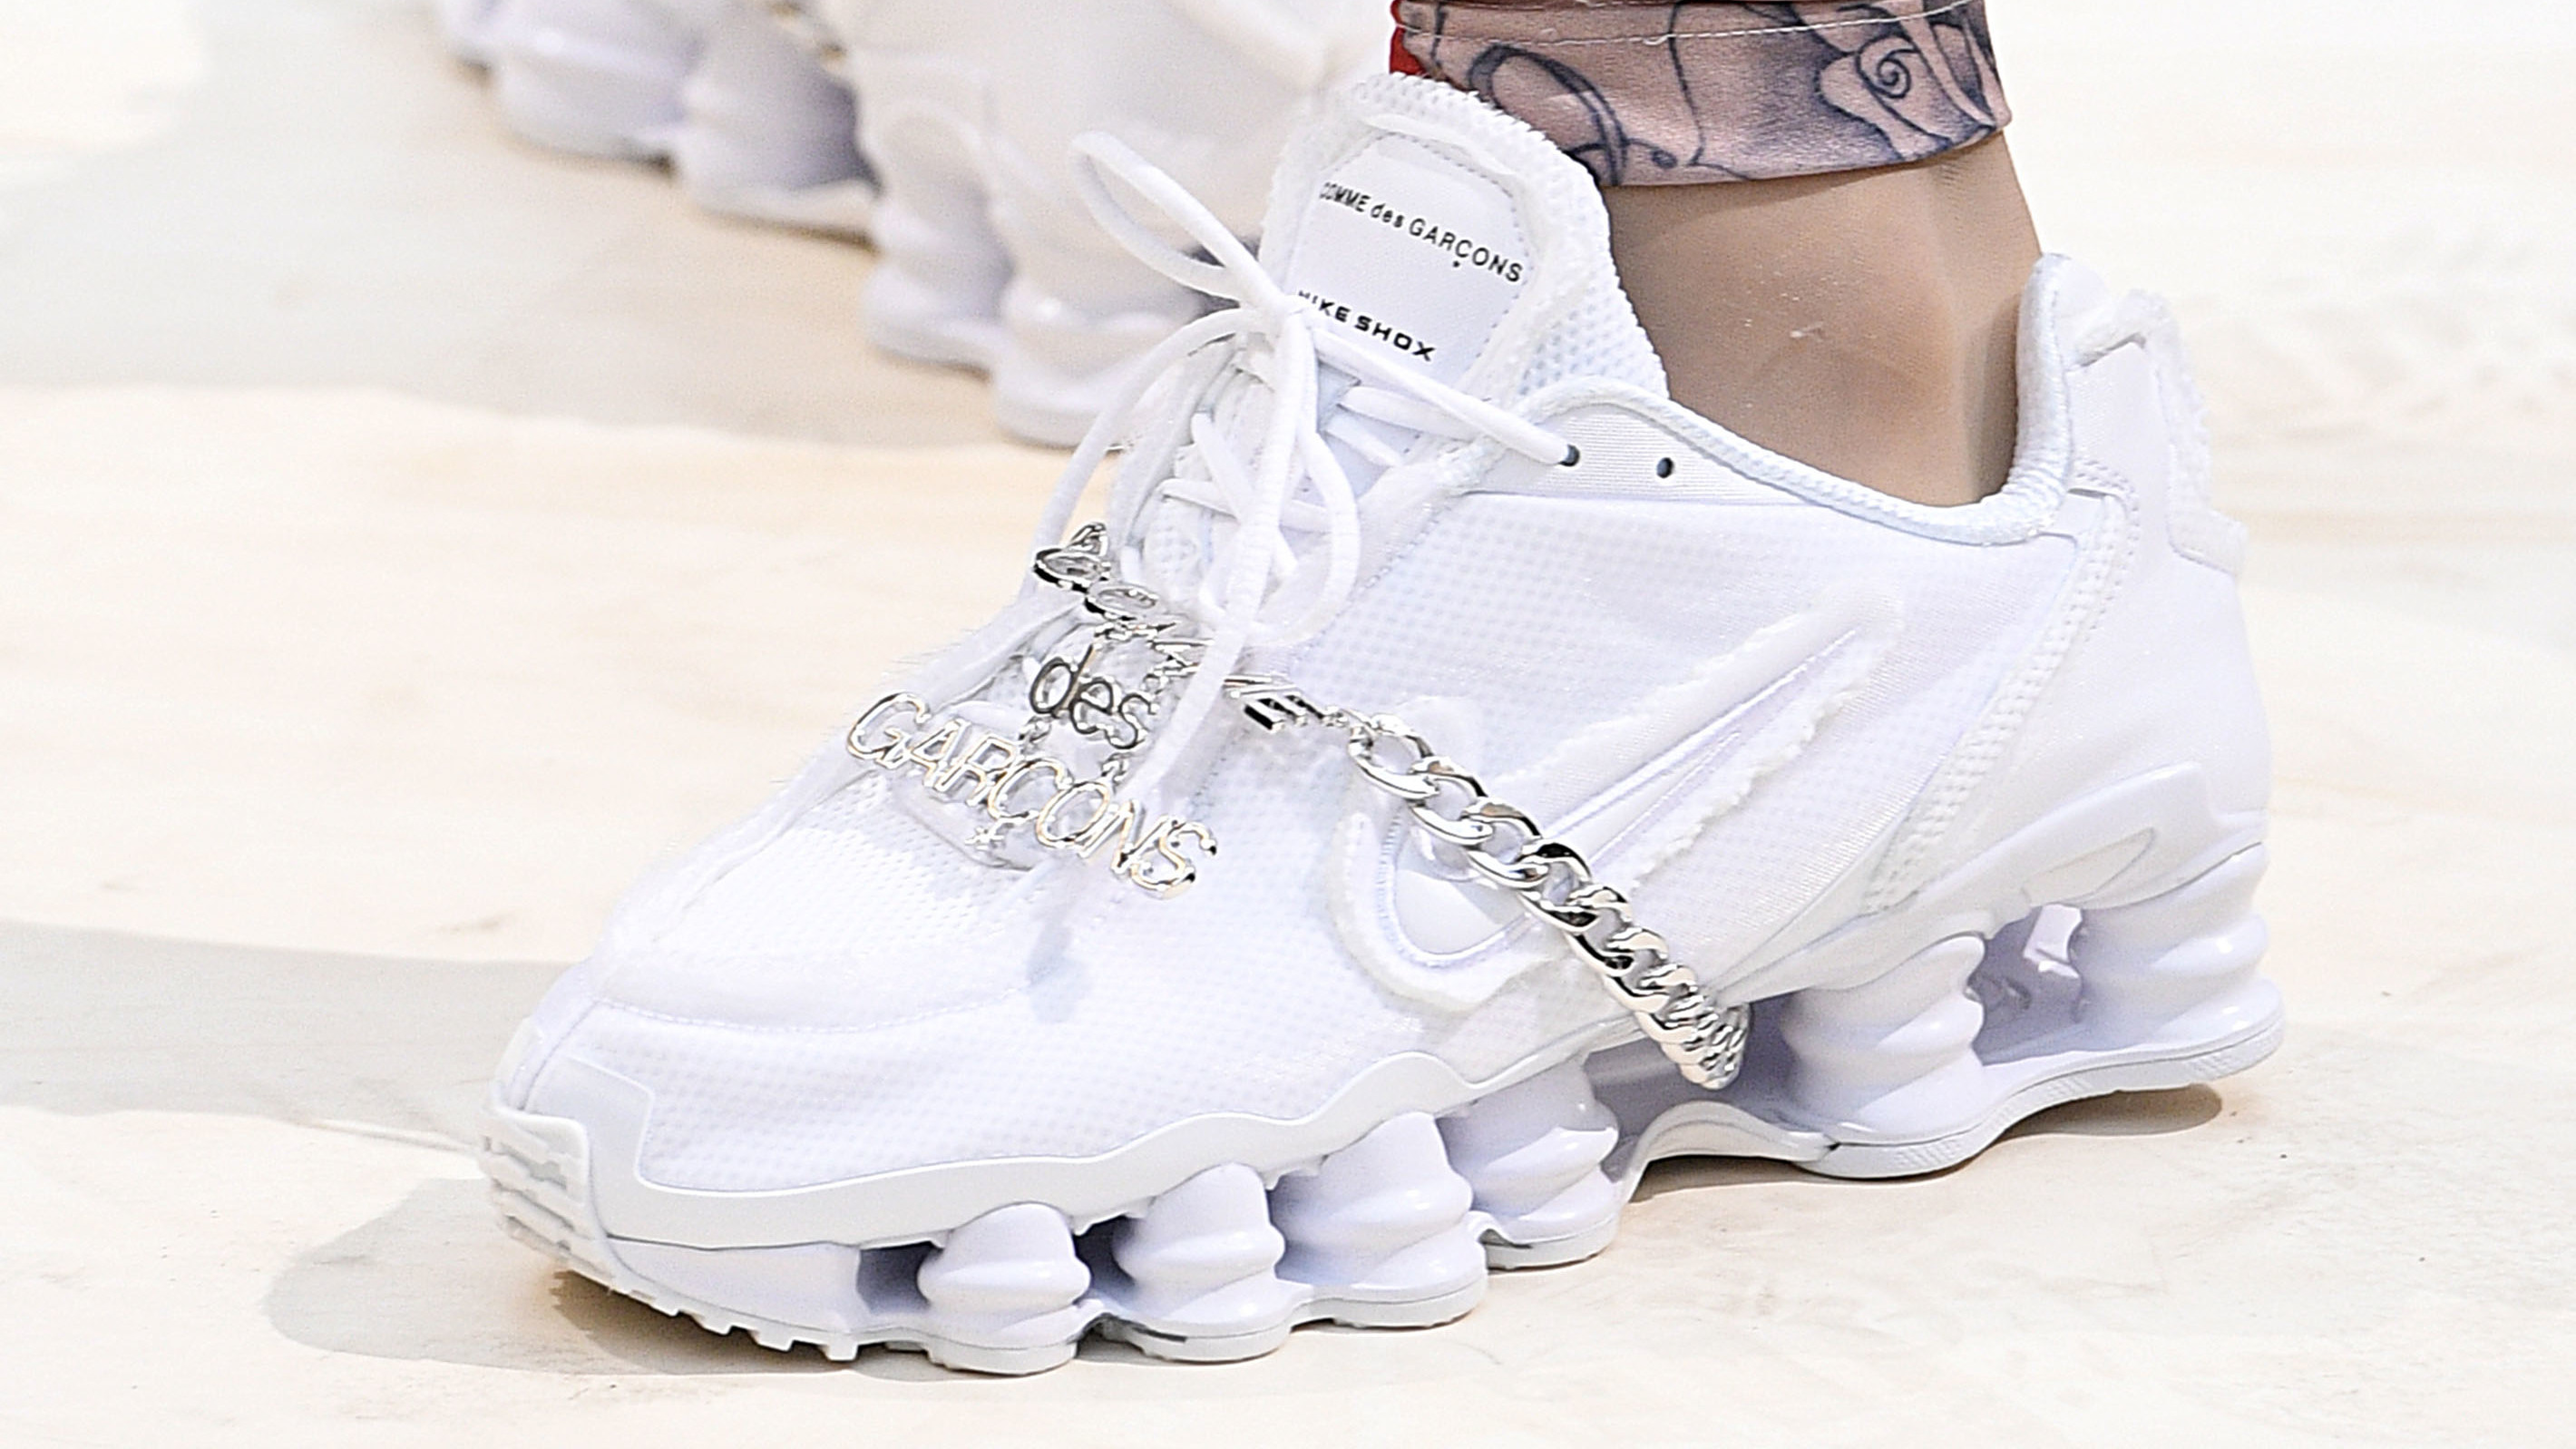 cfb003be097 Comme des Garcons x Nike Shox Debuts During Paris Fashion Week